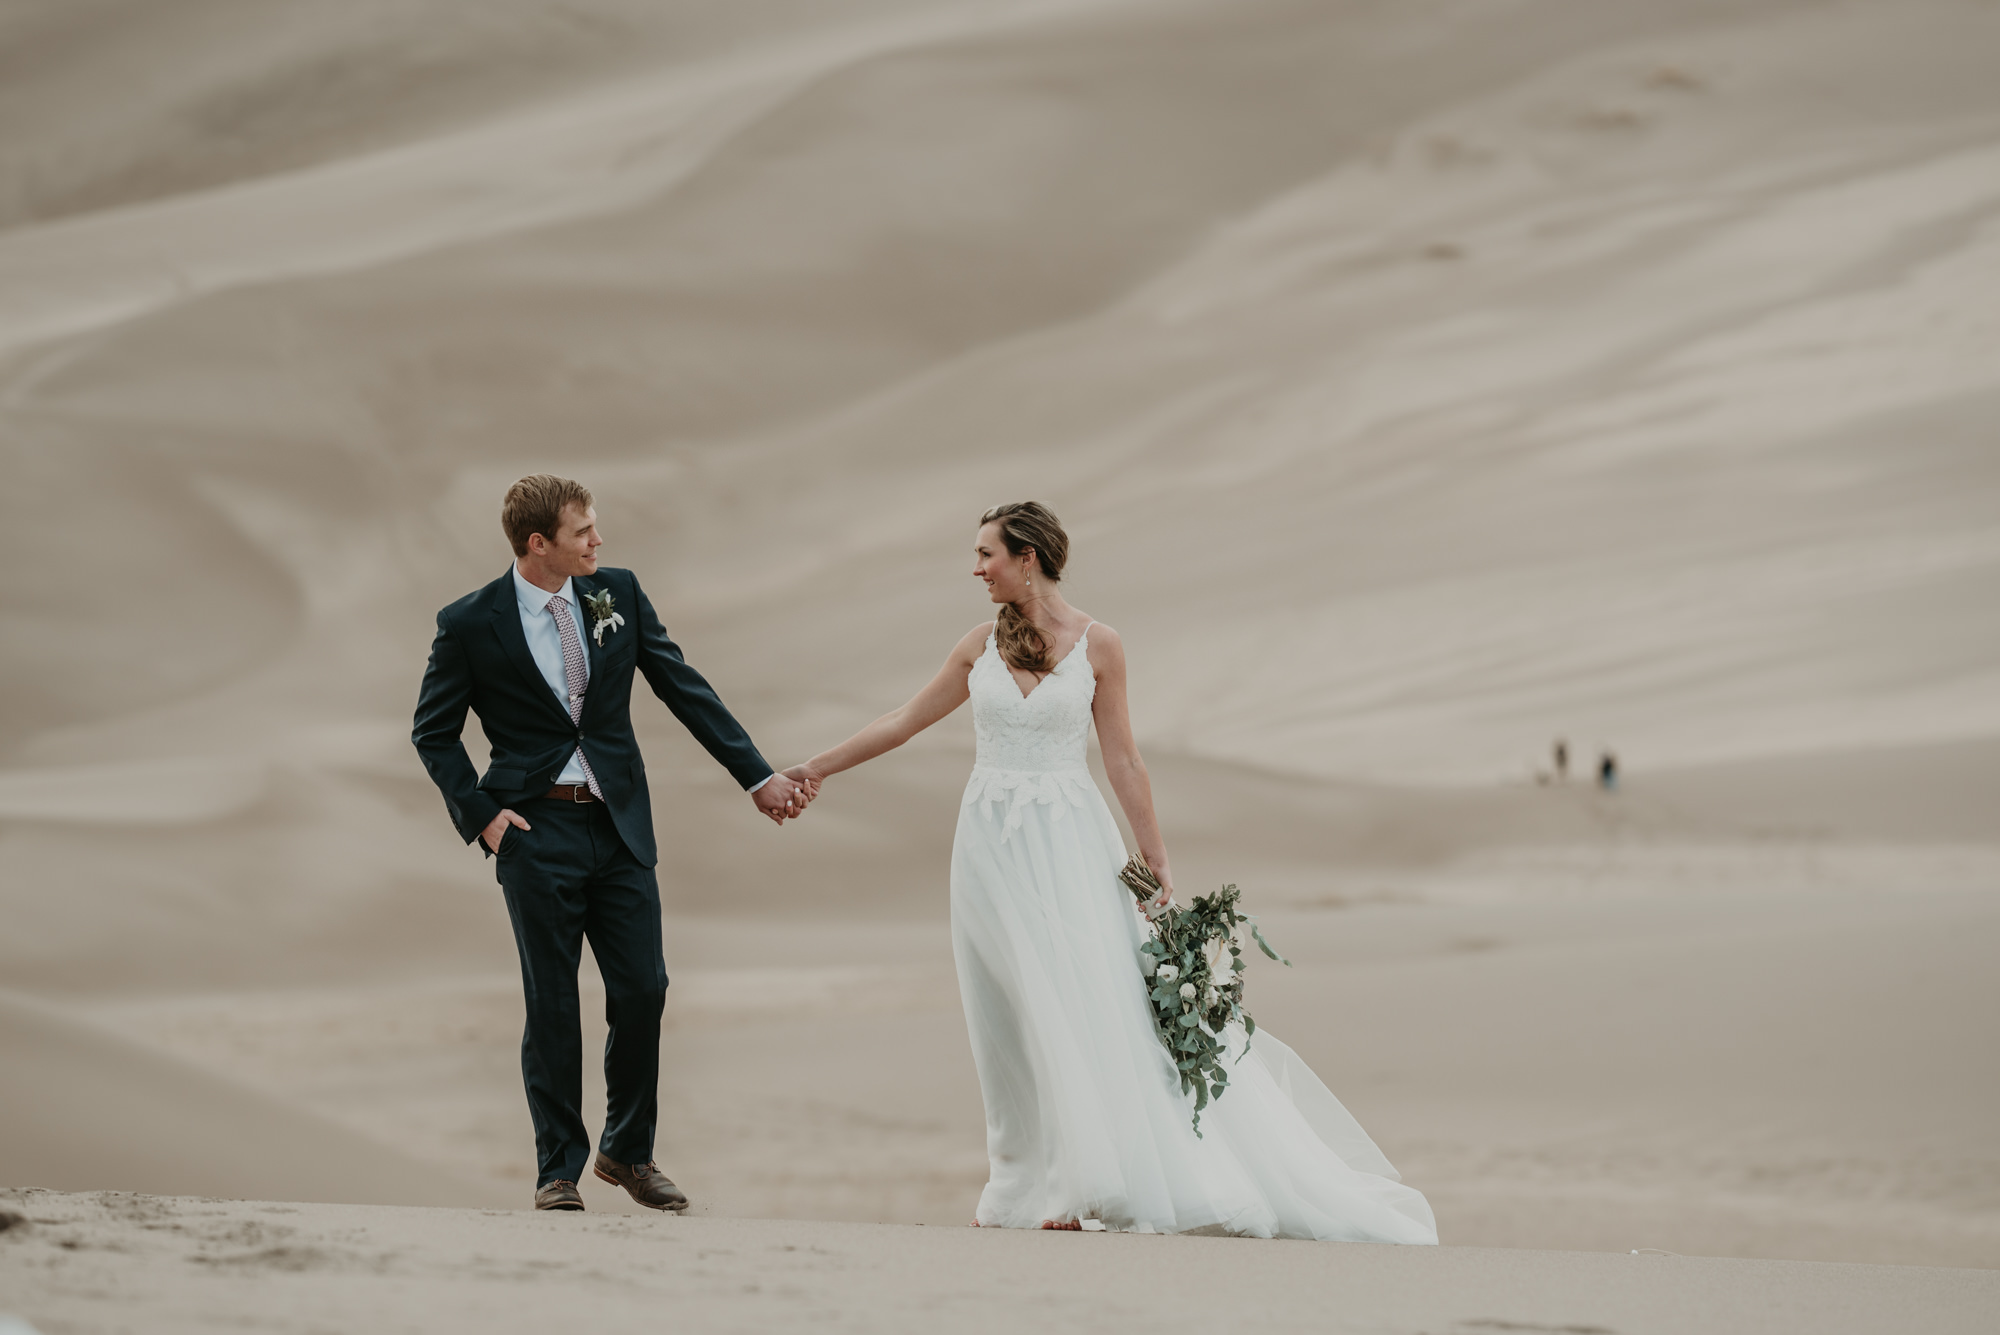 Small elopement wedding in Colorado.